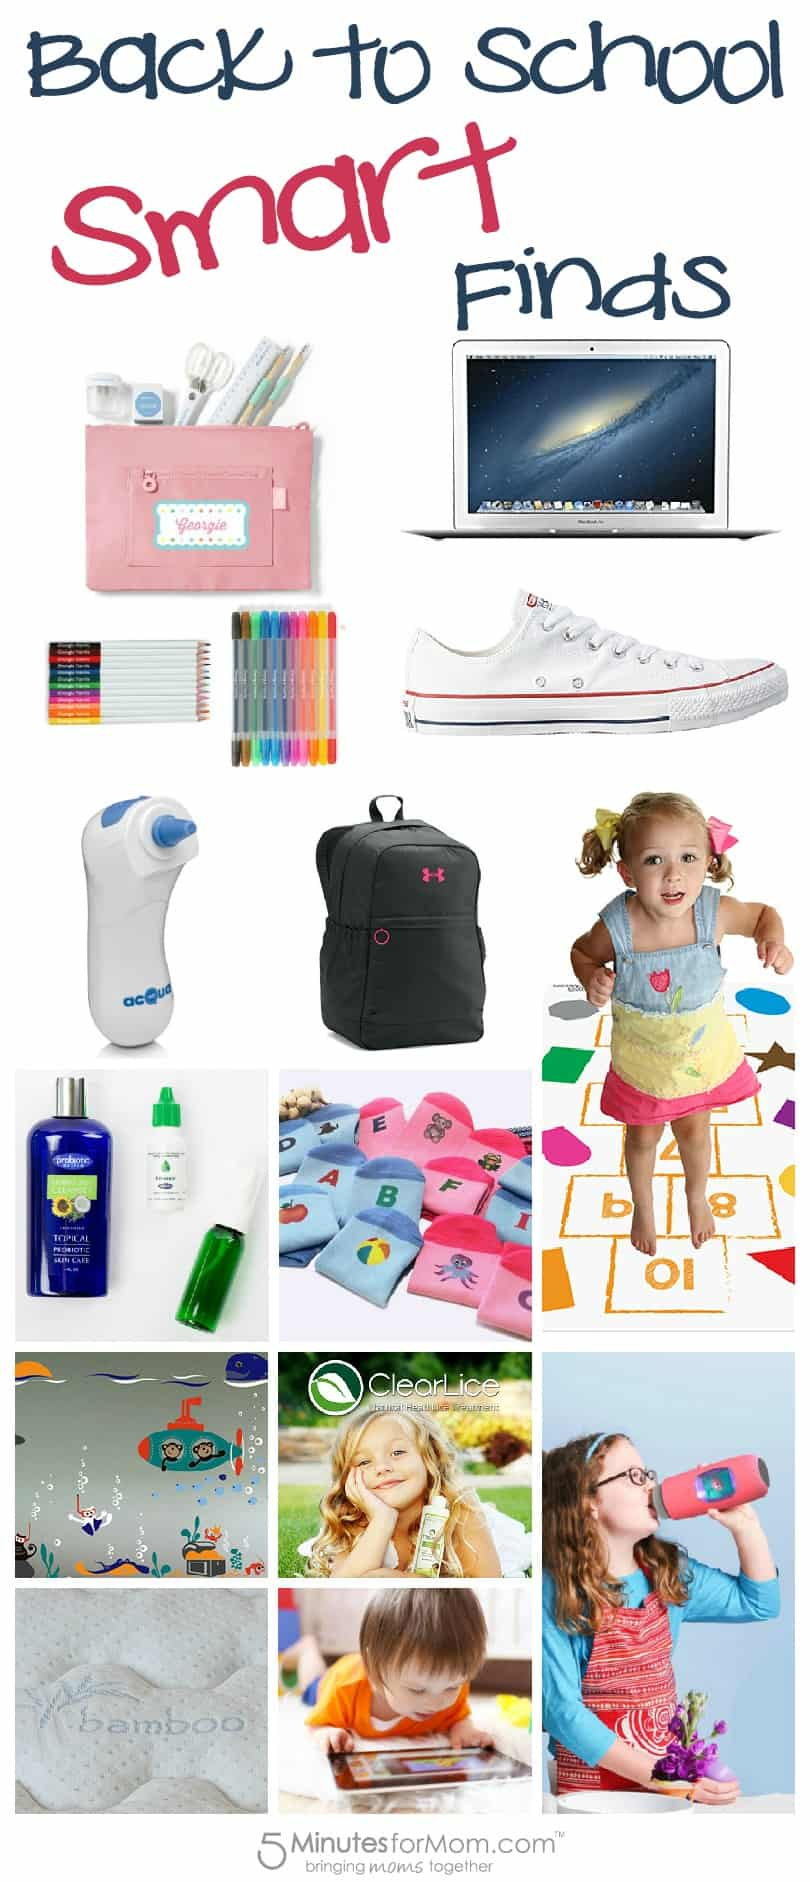 Back to School Shopping Guide - BTS Smart Finds